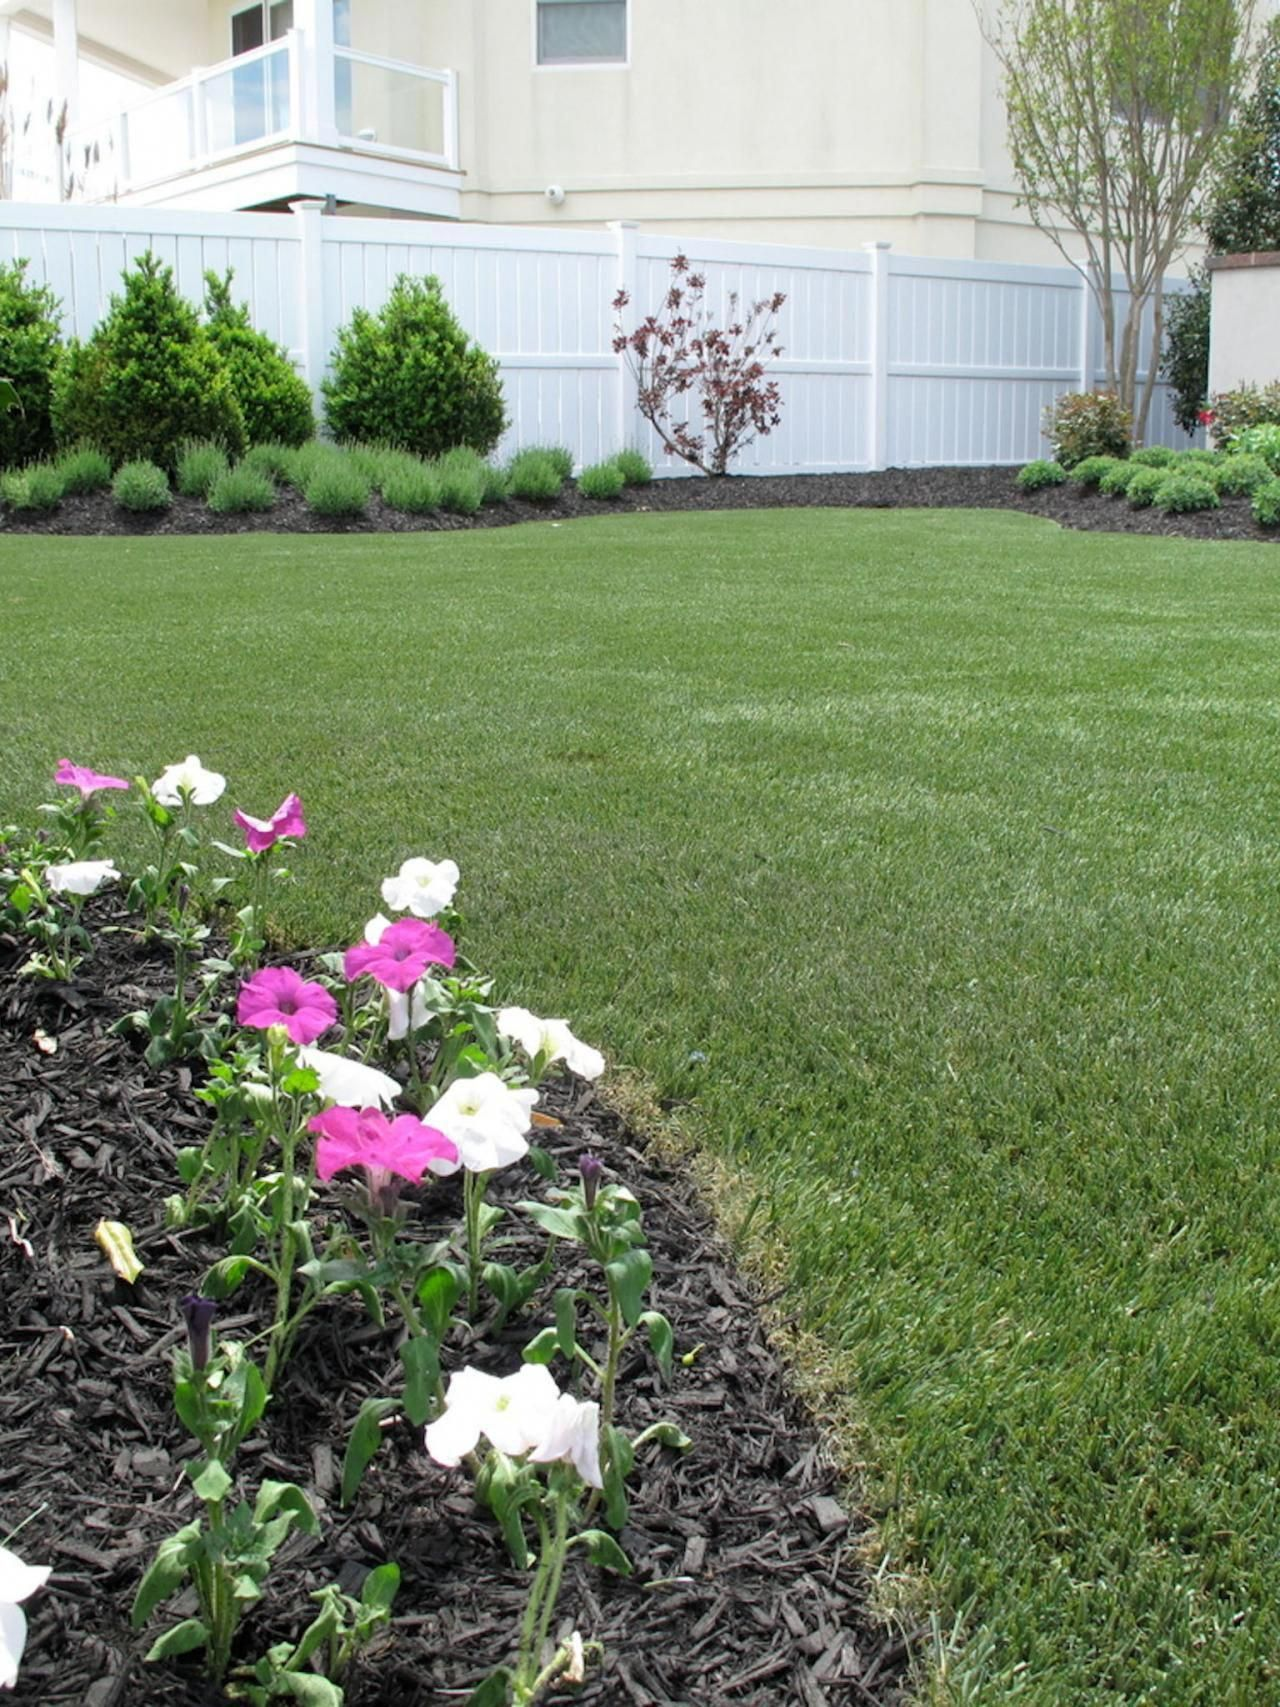 Top Landscaping Companies Near Me #LandscapingVisualizer - Top Landscaping Companies Near Me #LandscapingVisualizer